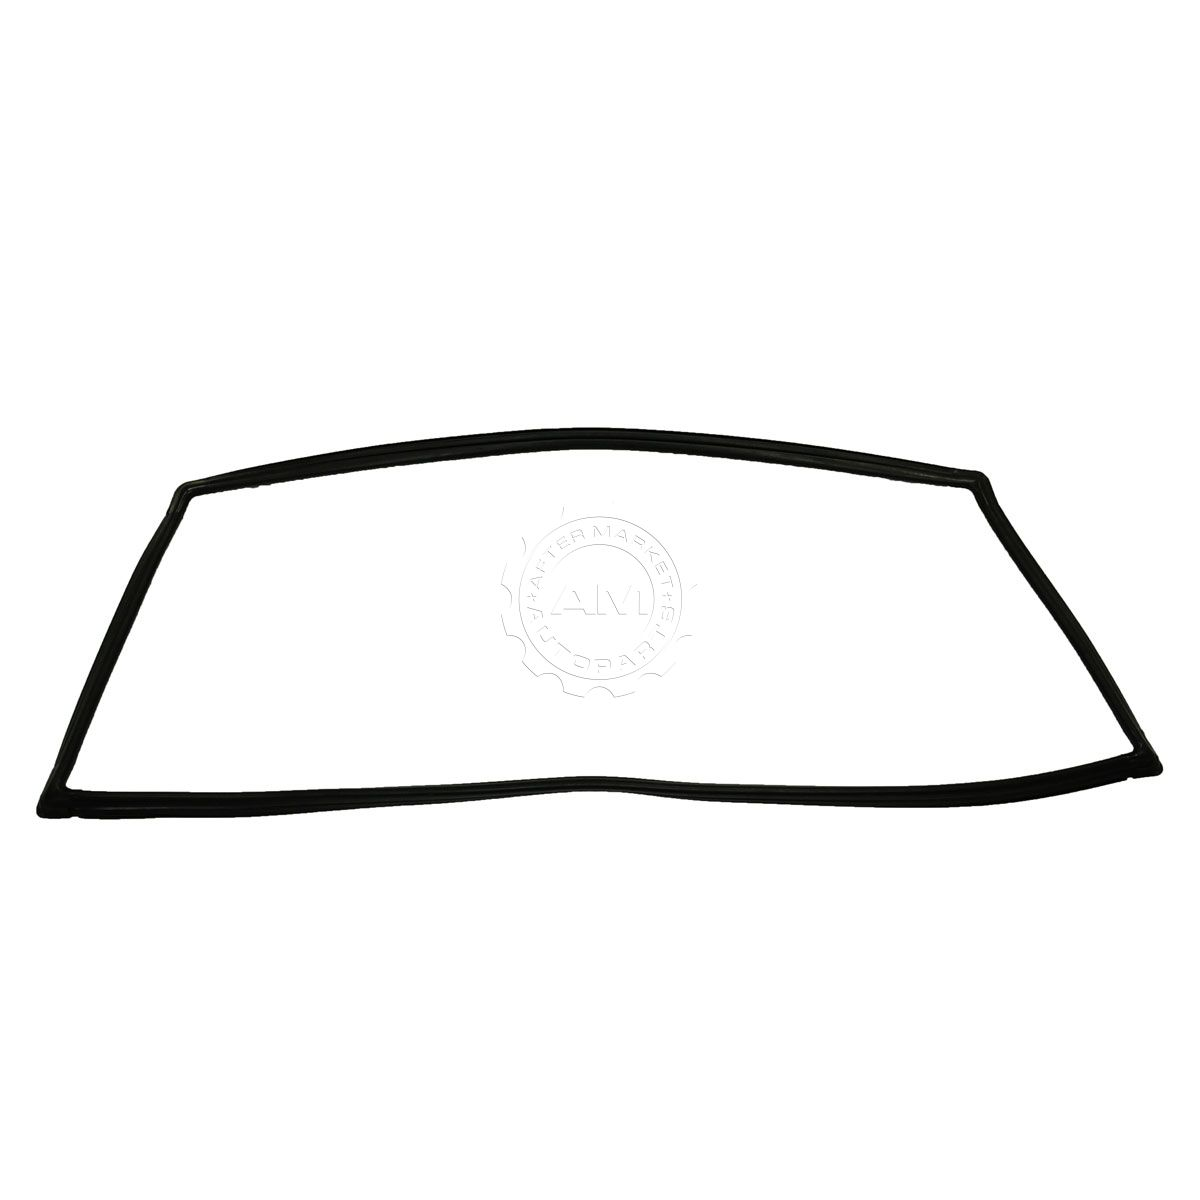 Rear Liftgate Glass Weatherstrip Seal For Jeep Cherokee